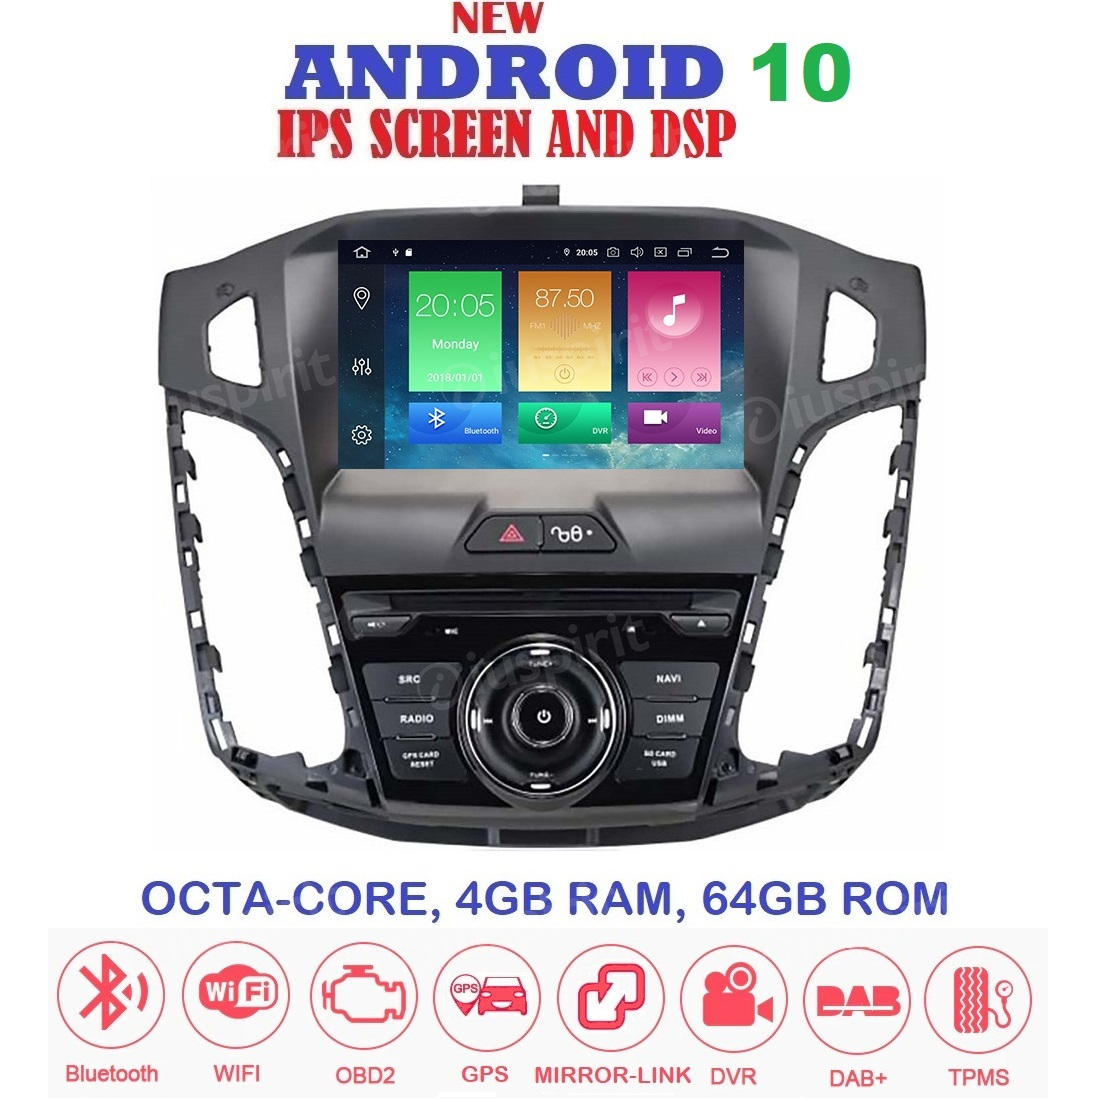 ANDROID 10 autoradio navigatore per Ford Focus 2011-2015 GPS DVD WI-FI Bluetooth MirrorLink